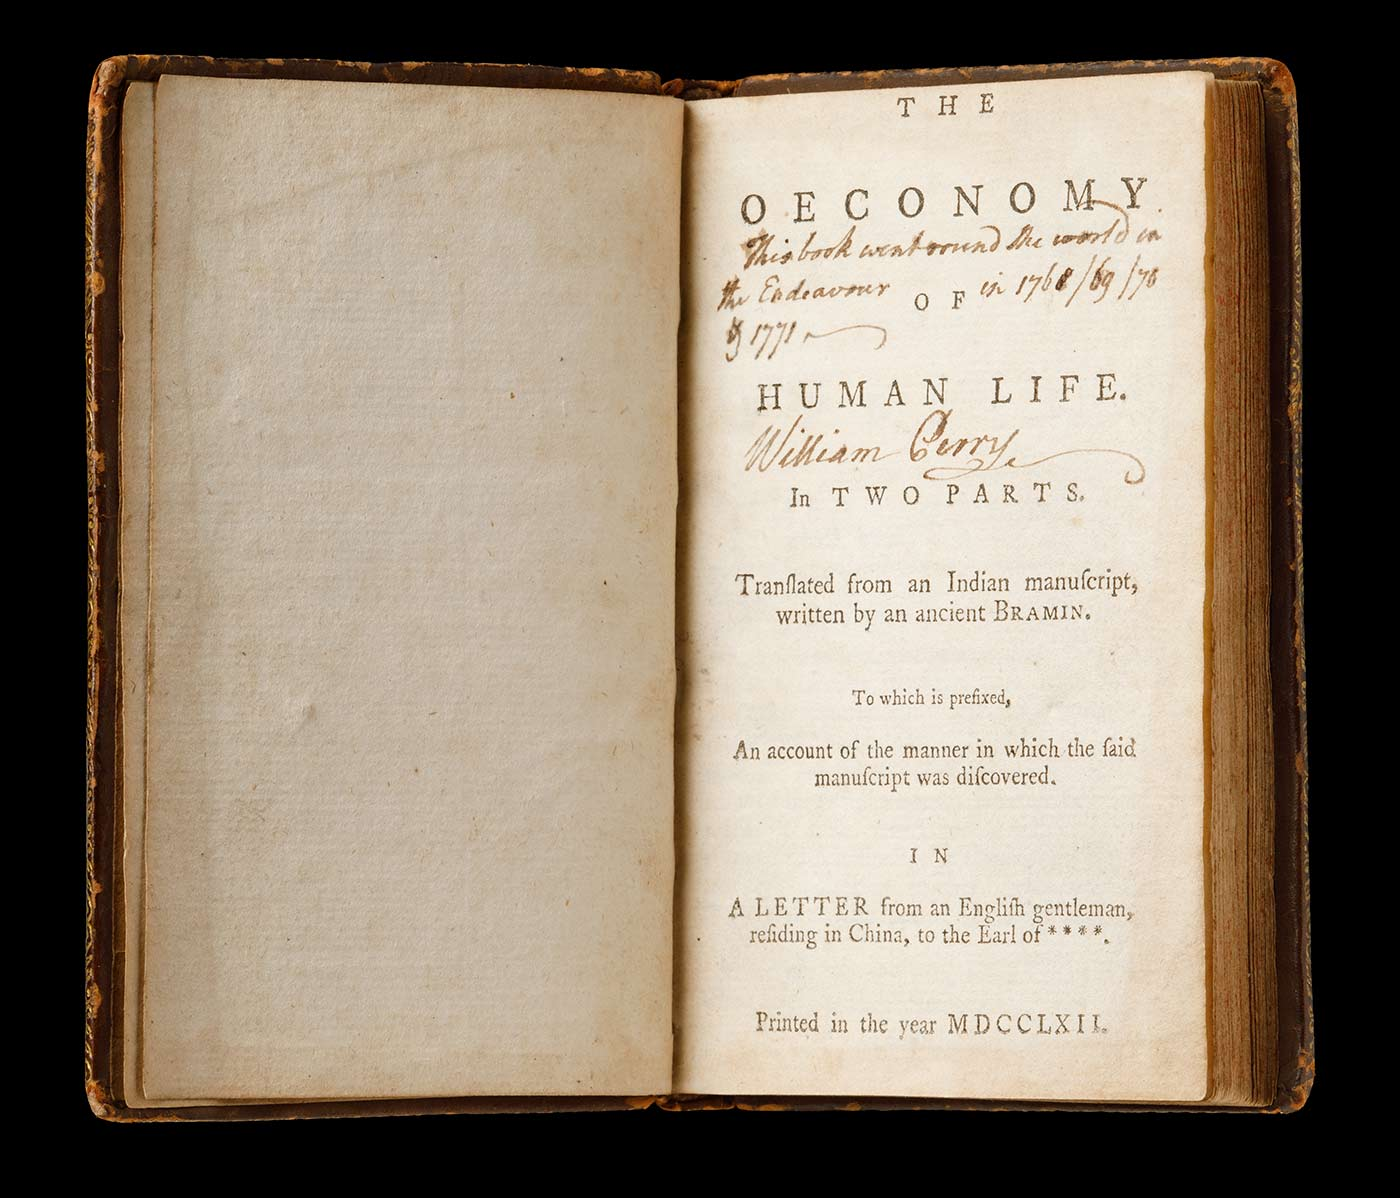 An open book featuring the title 'The Oeconomy of Human Life' on the title page. The title-page has the text [handwritten by William Perry] in black ink that reads 'This book went round the World on the Endeavour in 1768 / 69 / 70 & 1771', with Perry's signature underneath. - click to view larger image